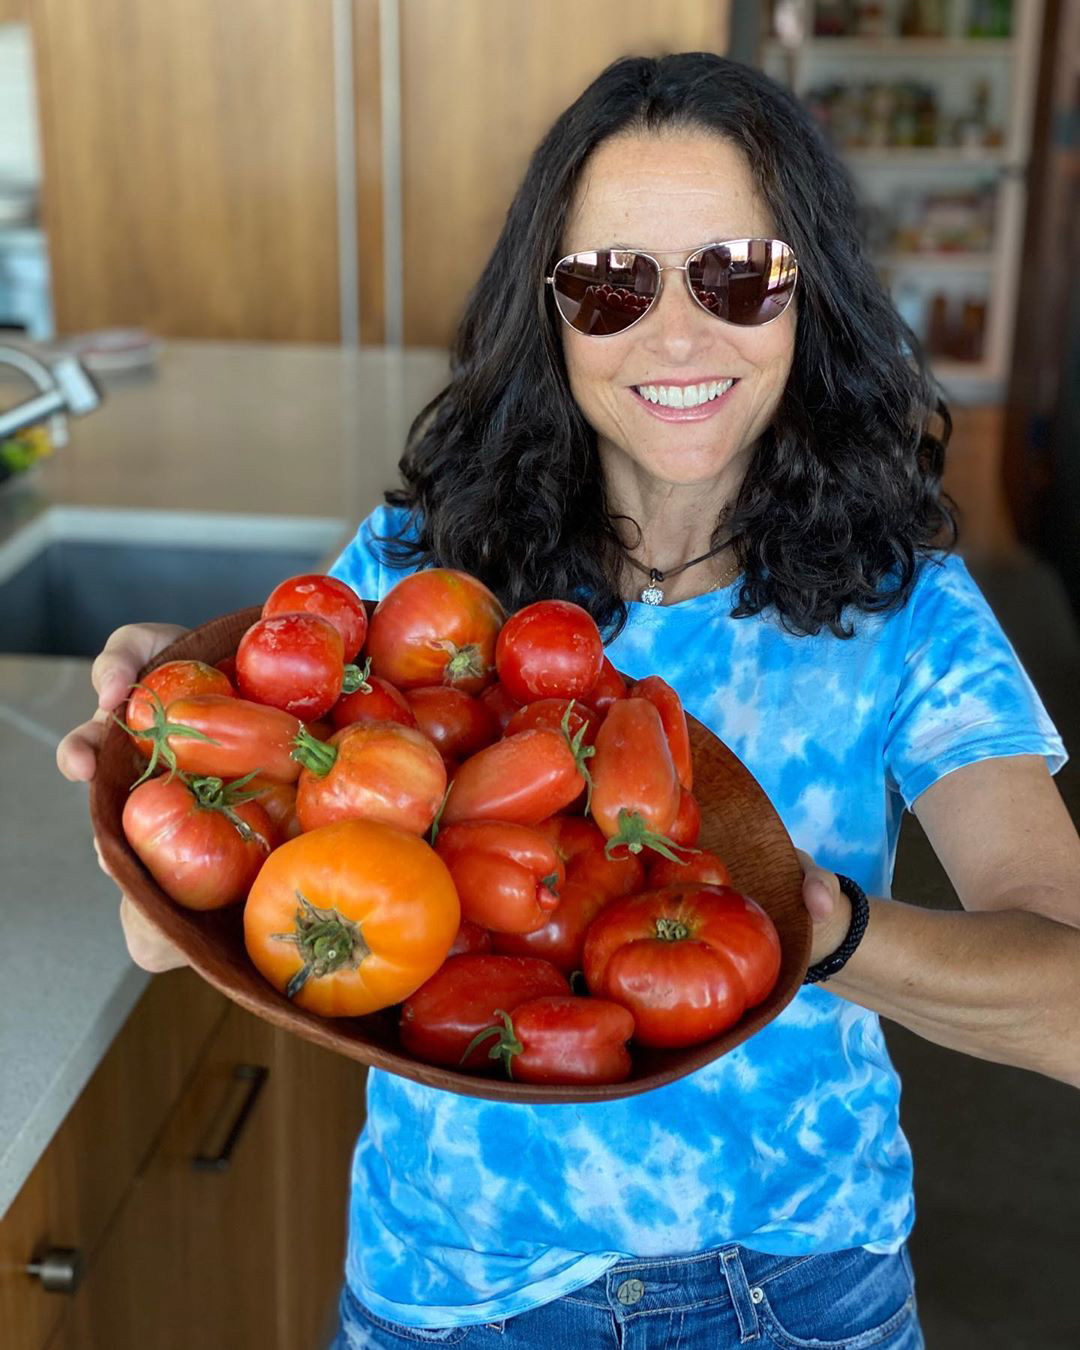 """""""You say tomato and I say a s-t ton,"""" joked the Veep star, holding up a heaping plate of the homegrown fruits in her kitchen.                             """"Better Homes and Gardens magazine's cover this month is 100 best tomato recipes ♥️,"""" Chrissy Teigen shared in the comments section, to which Louis-Dreyfus replied, """"will purchase STAT."""""""